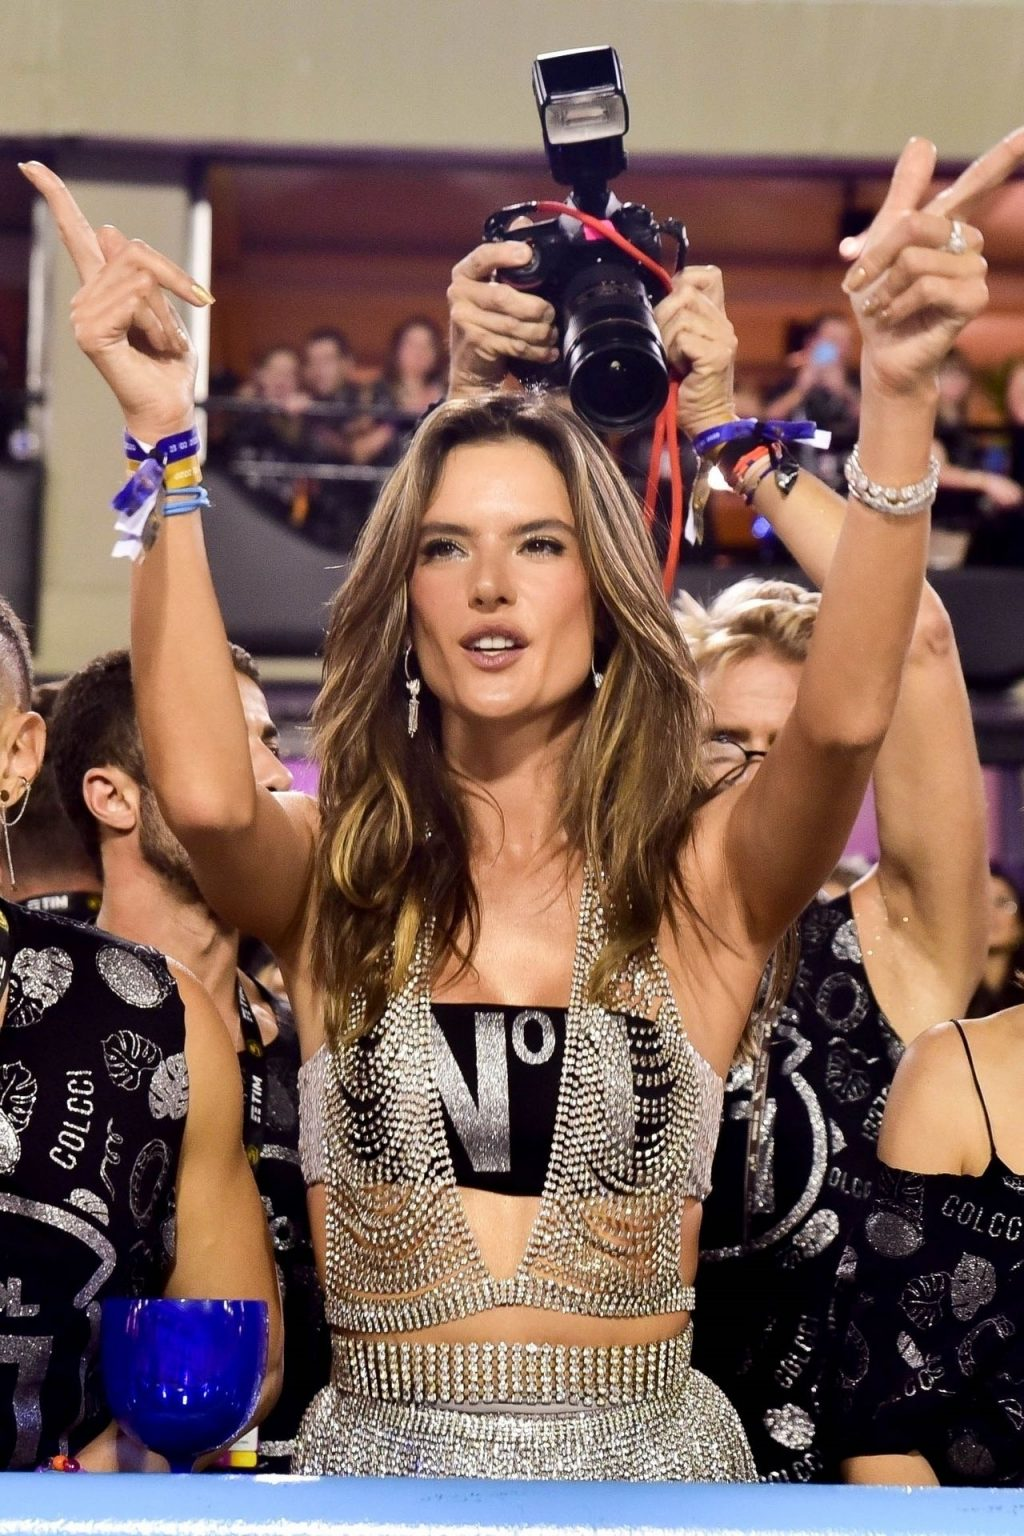 Alessandra Ambrosio Enjoys Rio Carnival With Her Friends (51 Photos)